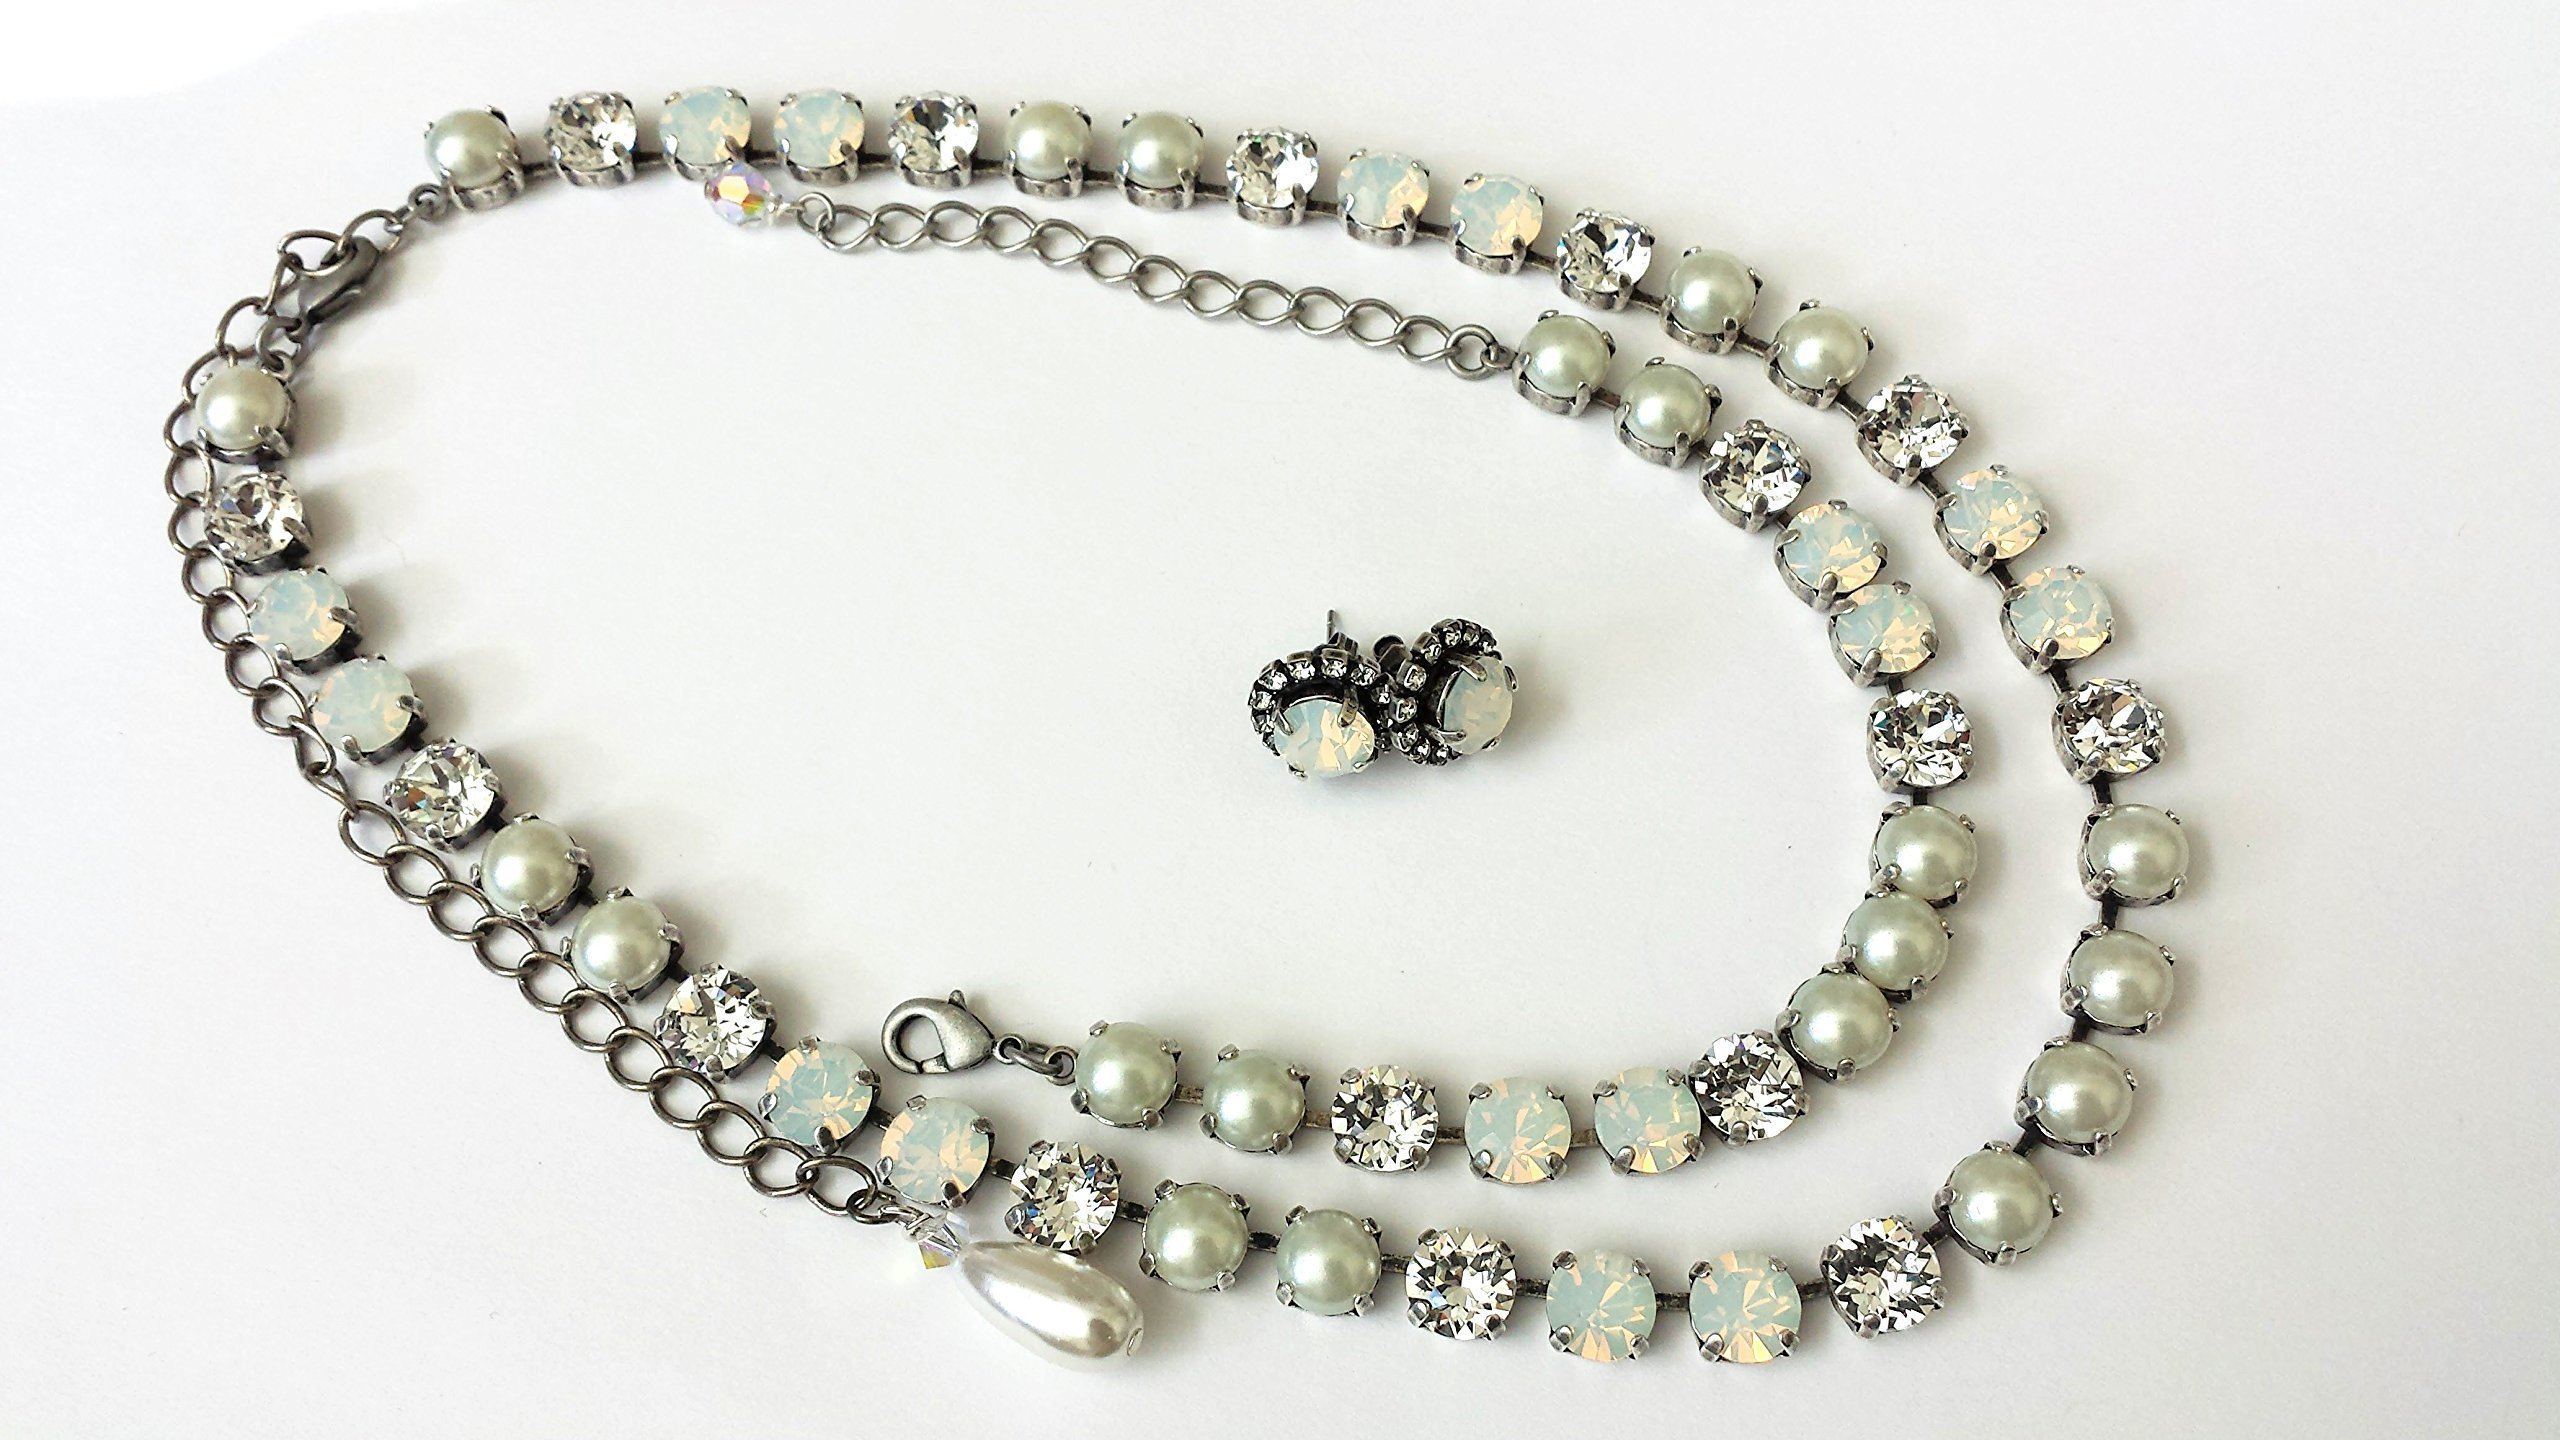 Swarovski Crystal Pearl and Opal Jewelry Bridals Elegant Necklace Bracelet and Earrings Set